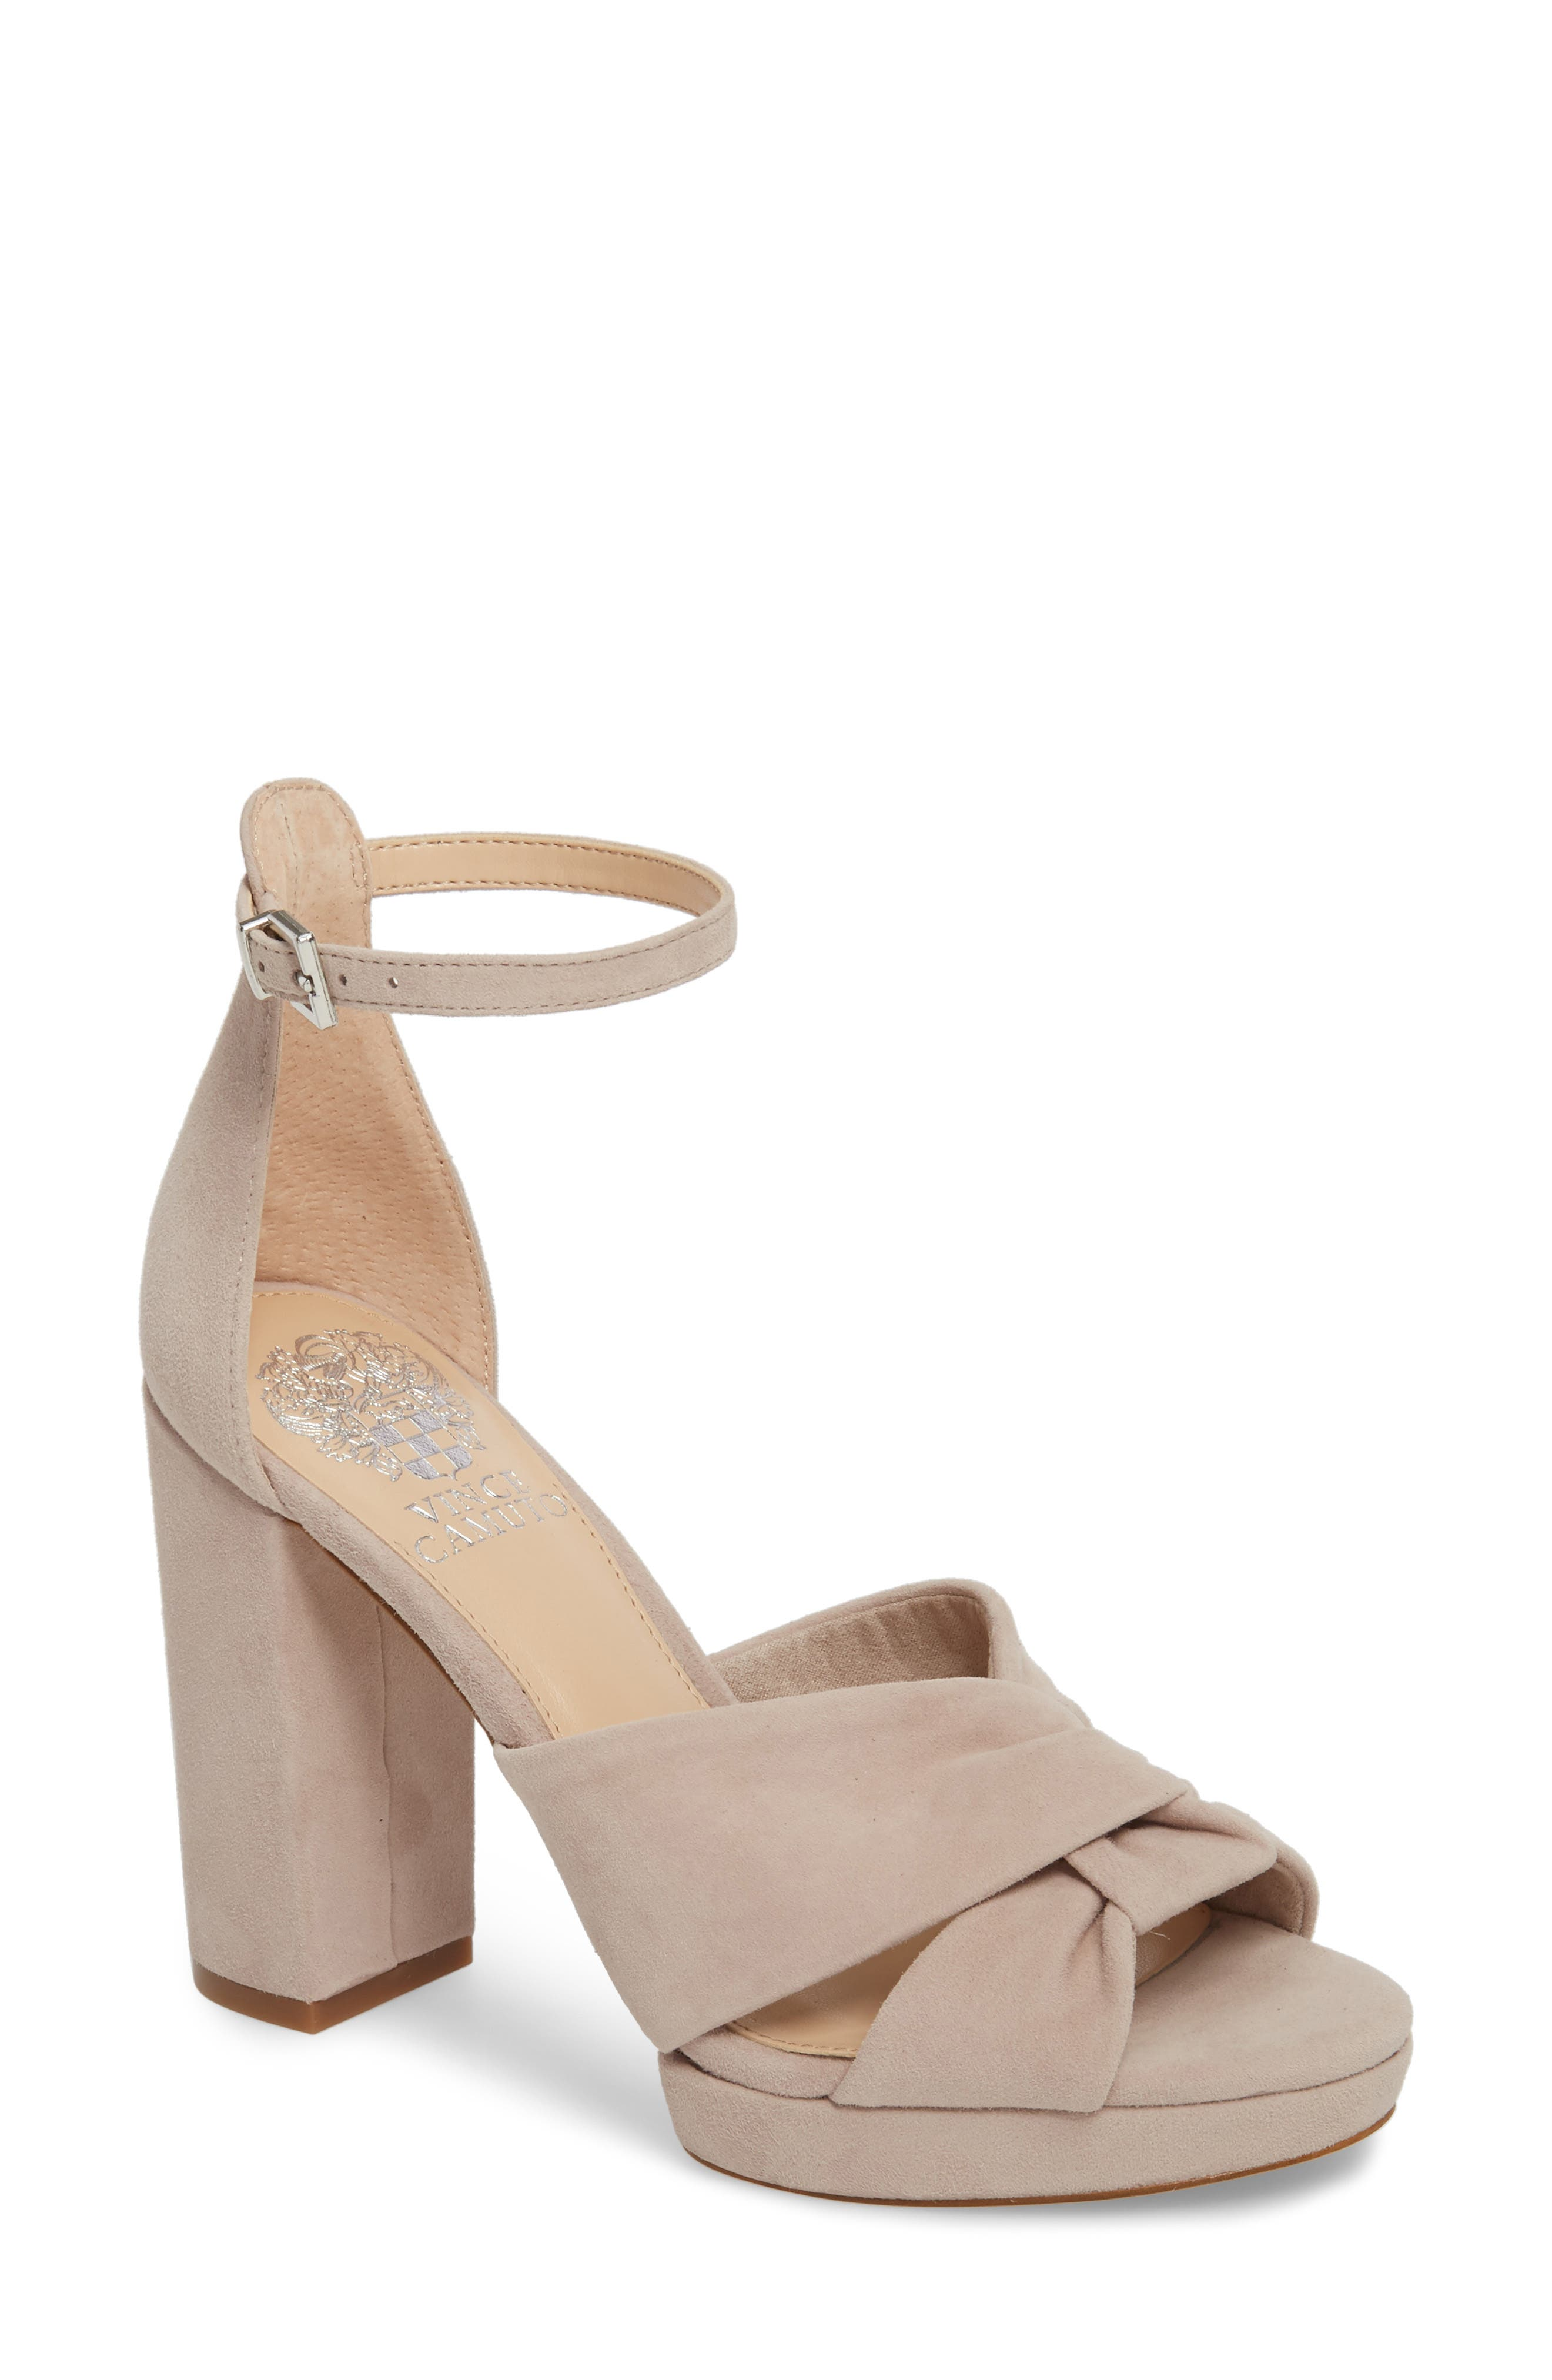 Corlesta Sandal,                             Main thumbnail 1, color,                             TIPSY TAUPE SUEDE